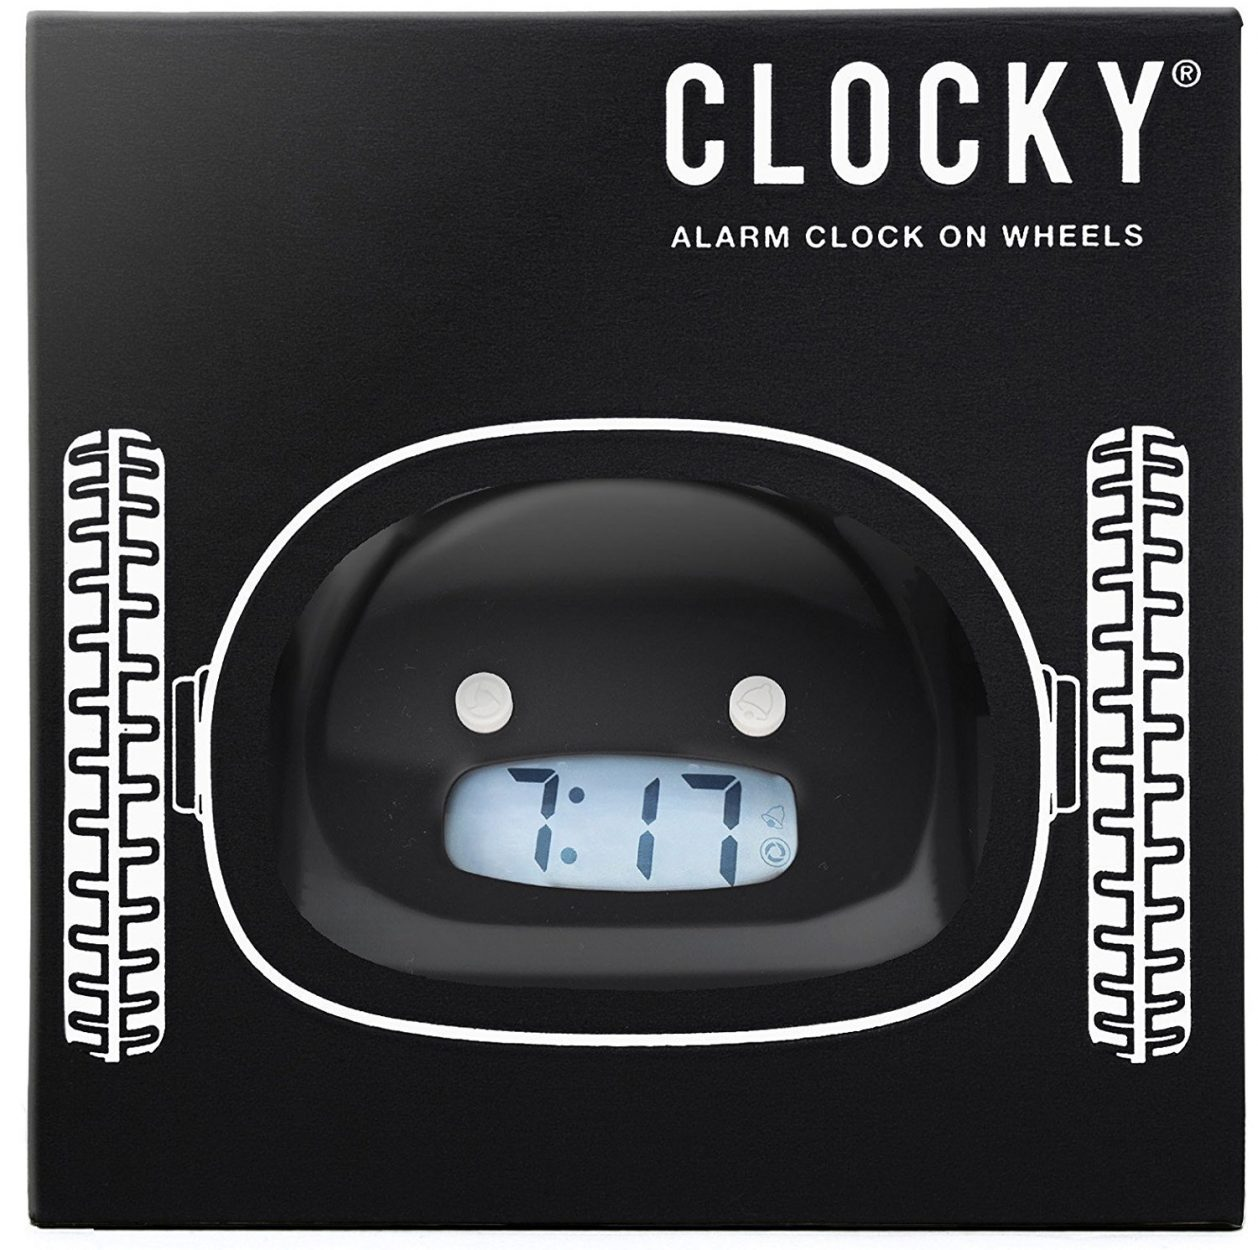 Clocky: Alarm Clock on Wheels